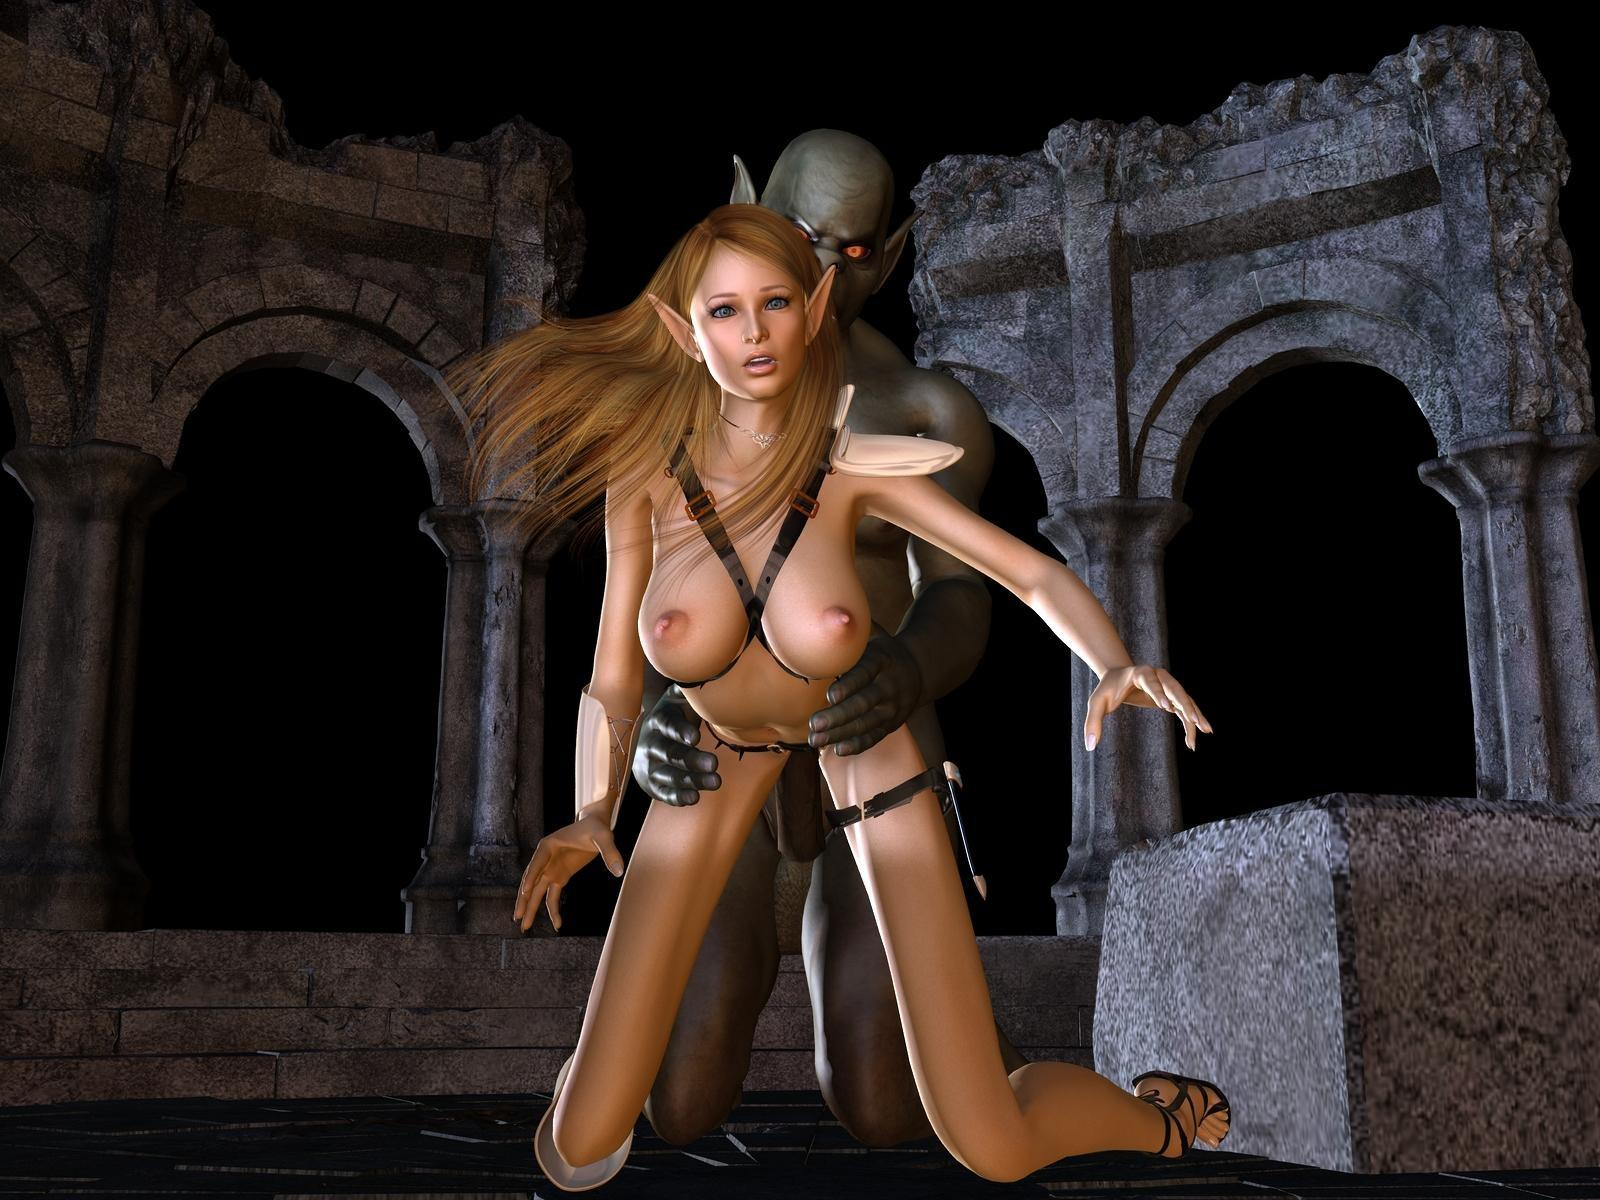 Porncraft lara croft erotica gallery